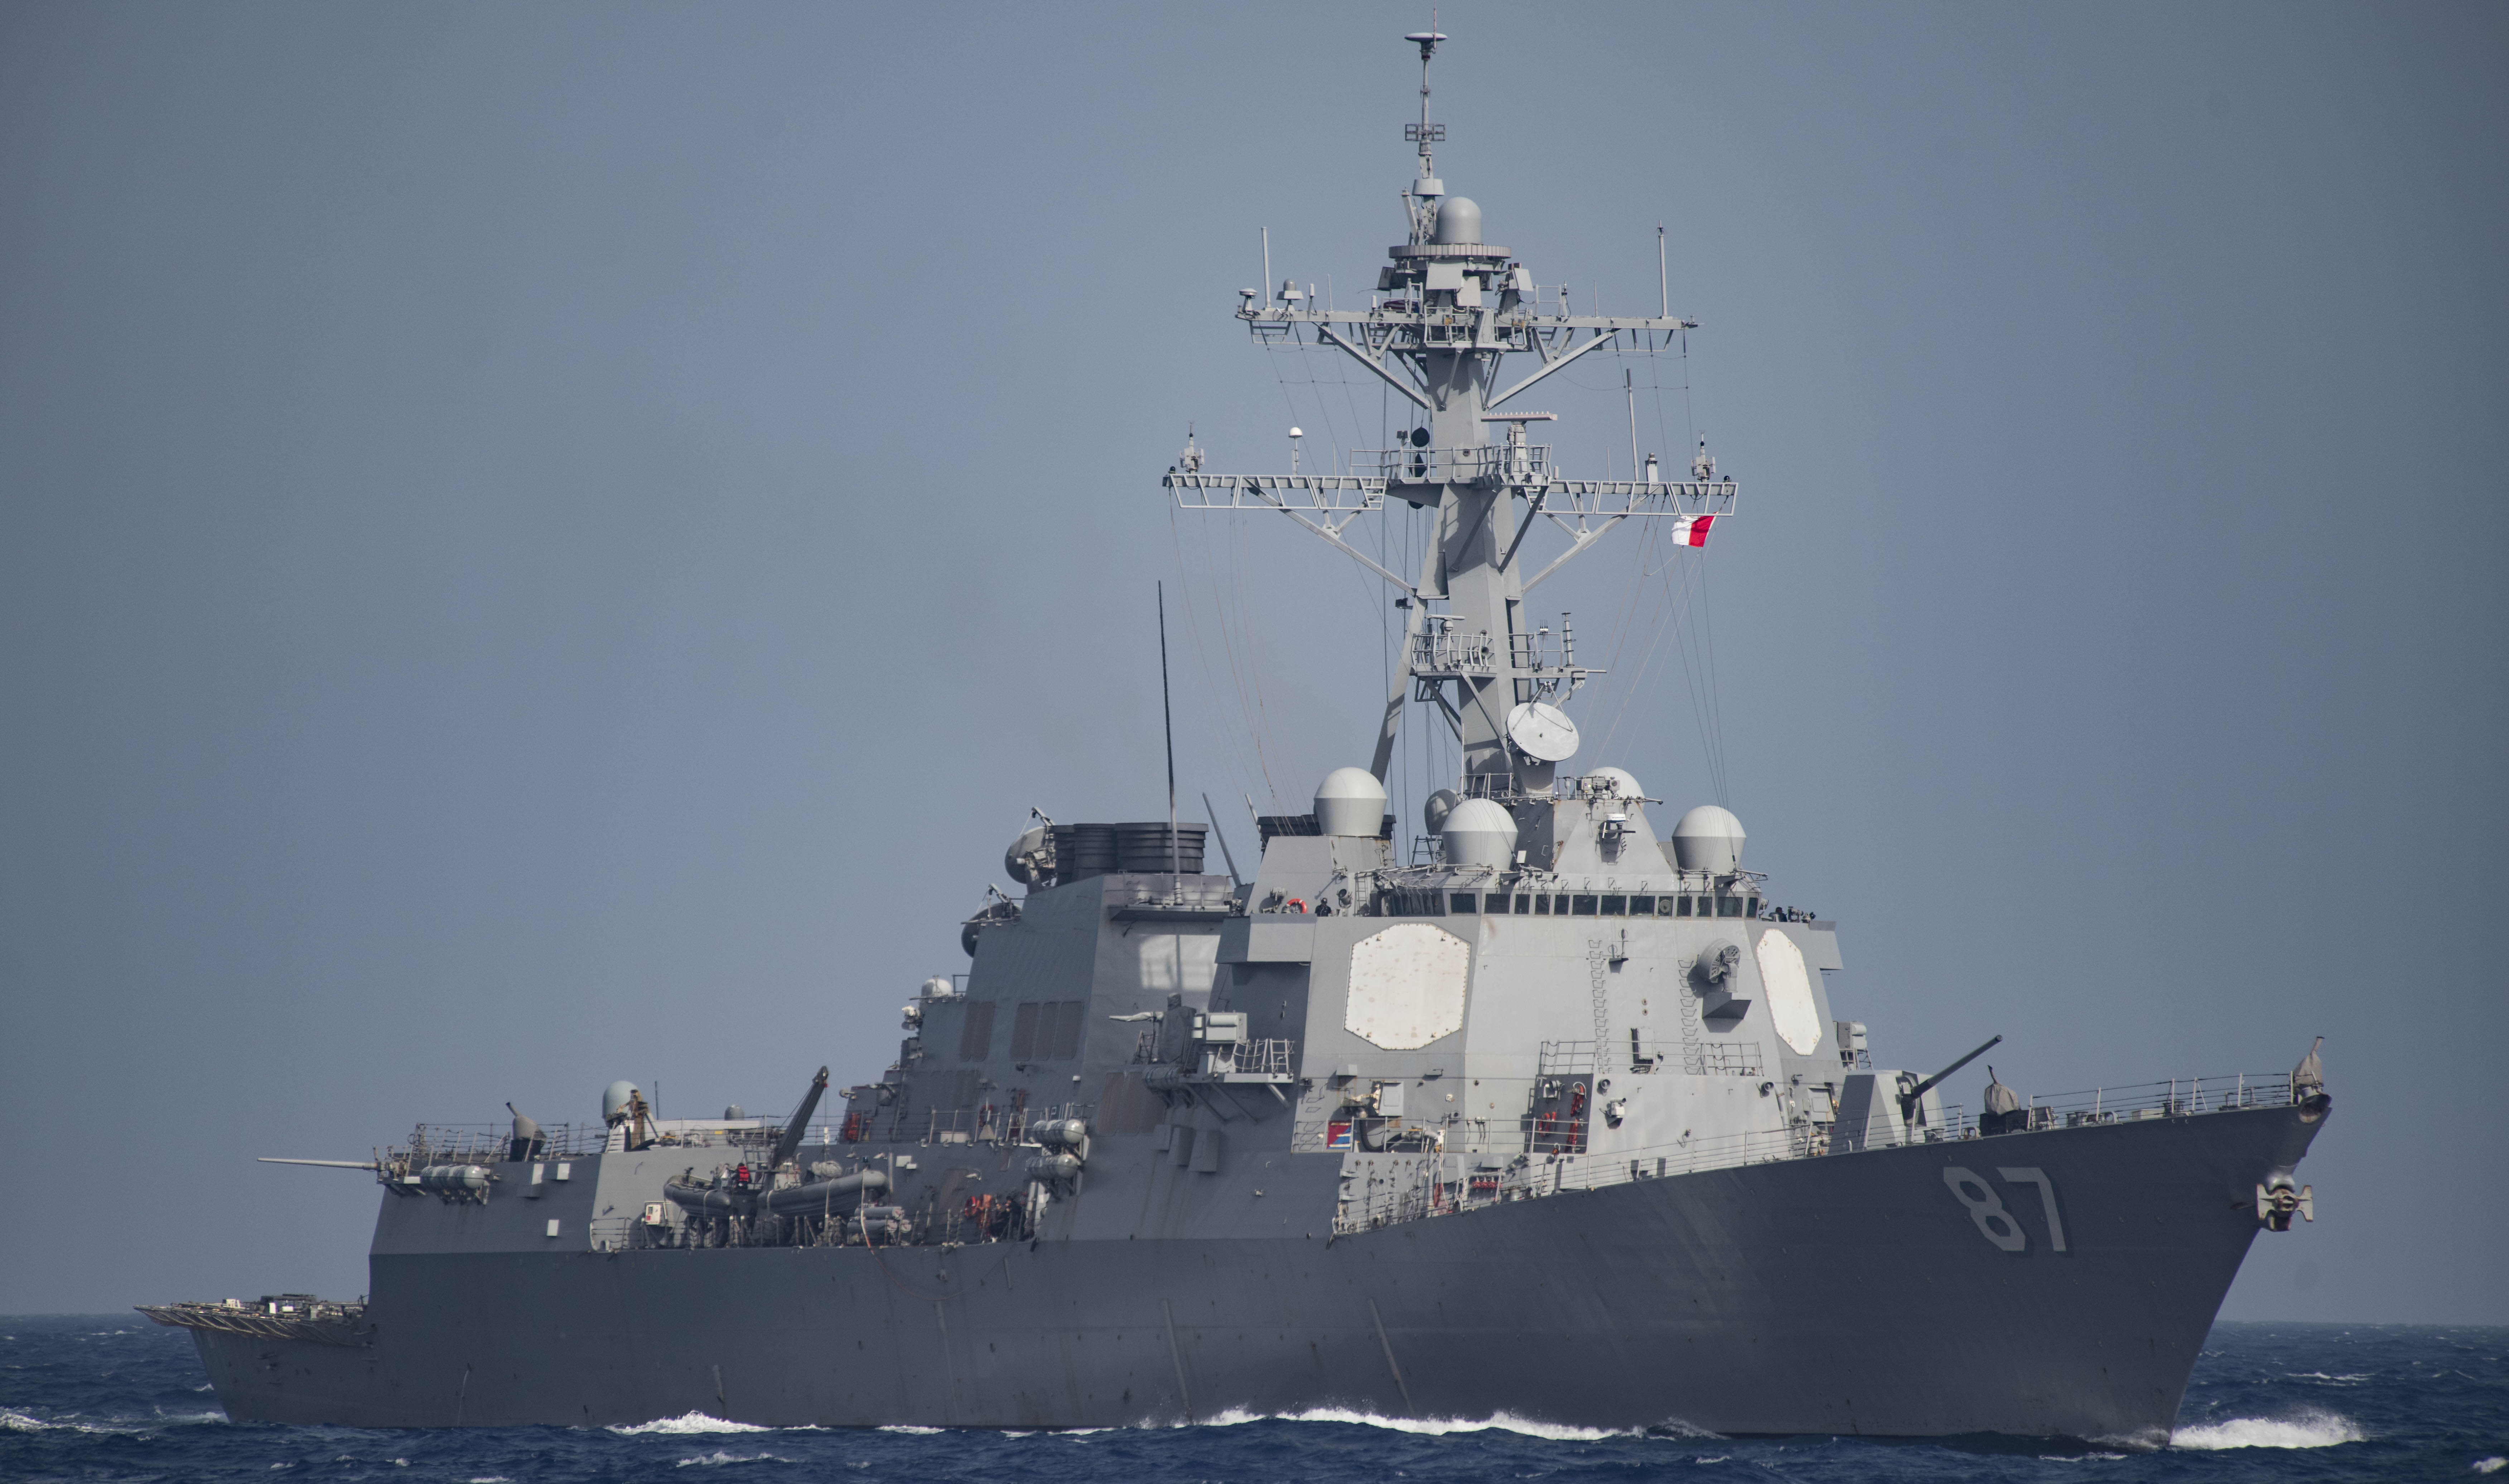 The Arleigh Burke Class guided-missile destroyer USS Mason (DDG-87) on June 24, 2016. US Navy Photo